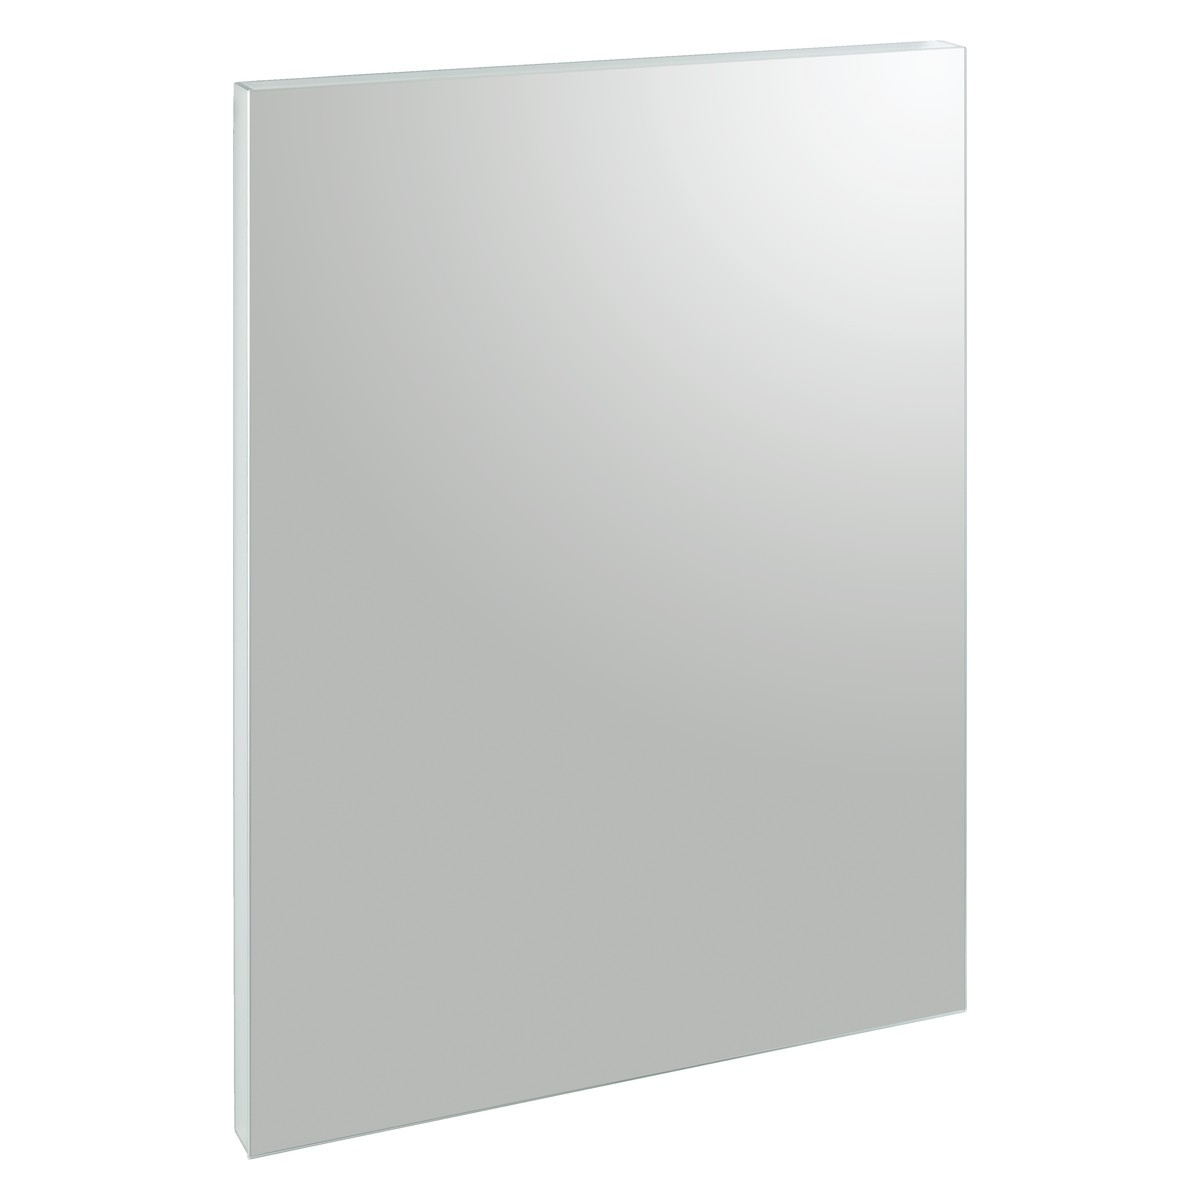 Long Mirrors For Walls Mirrors Large Round Full Length Wall Pertaining To Long Silver Wall Mirror (Image 8 of 15)